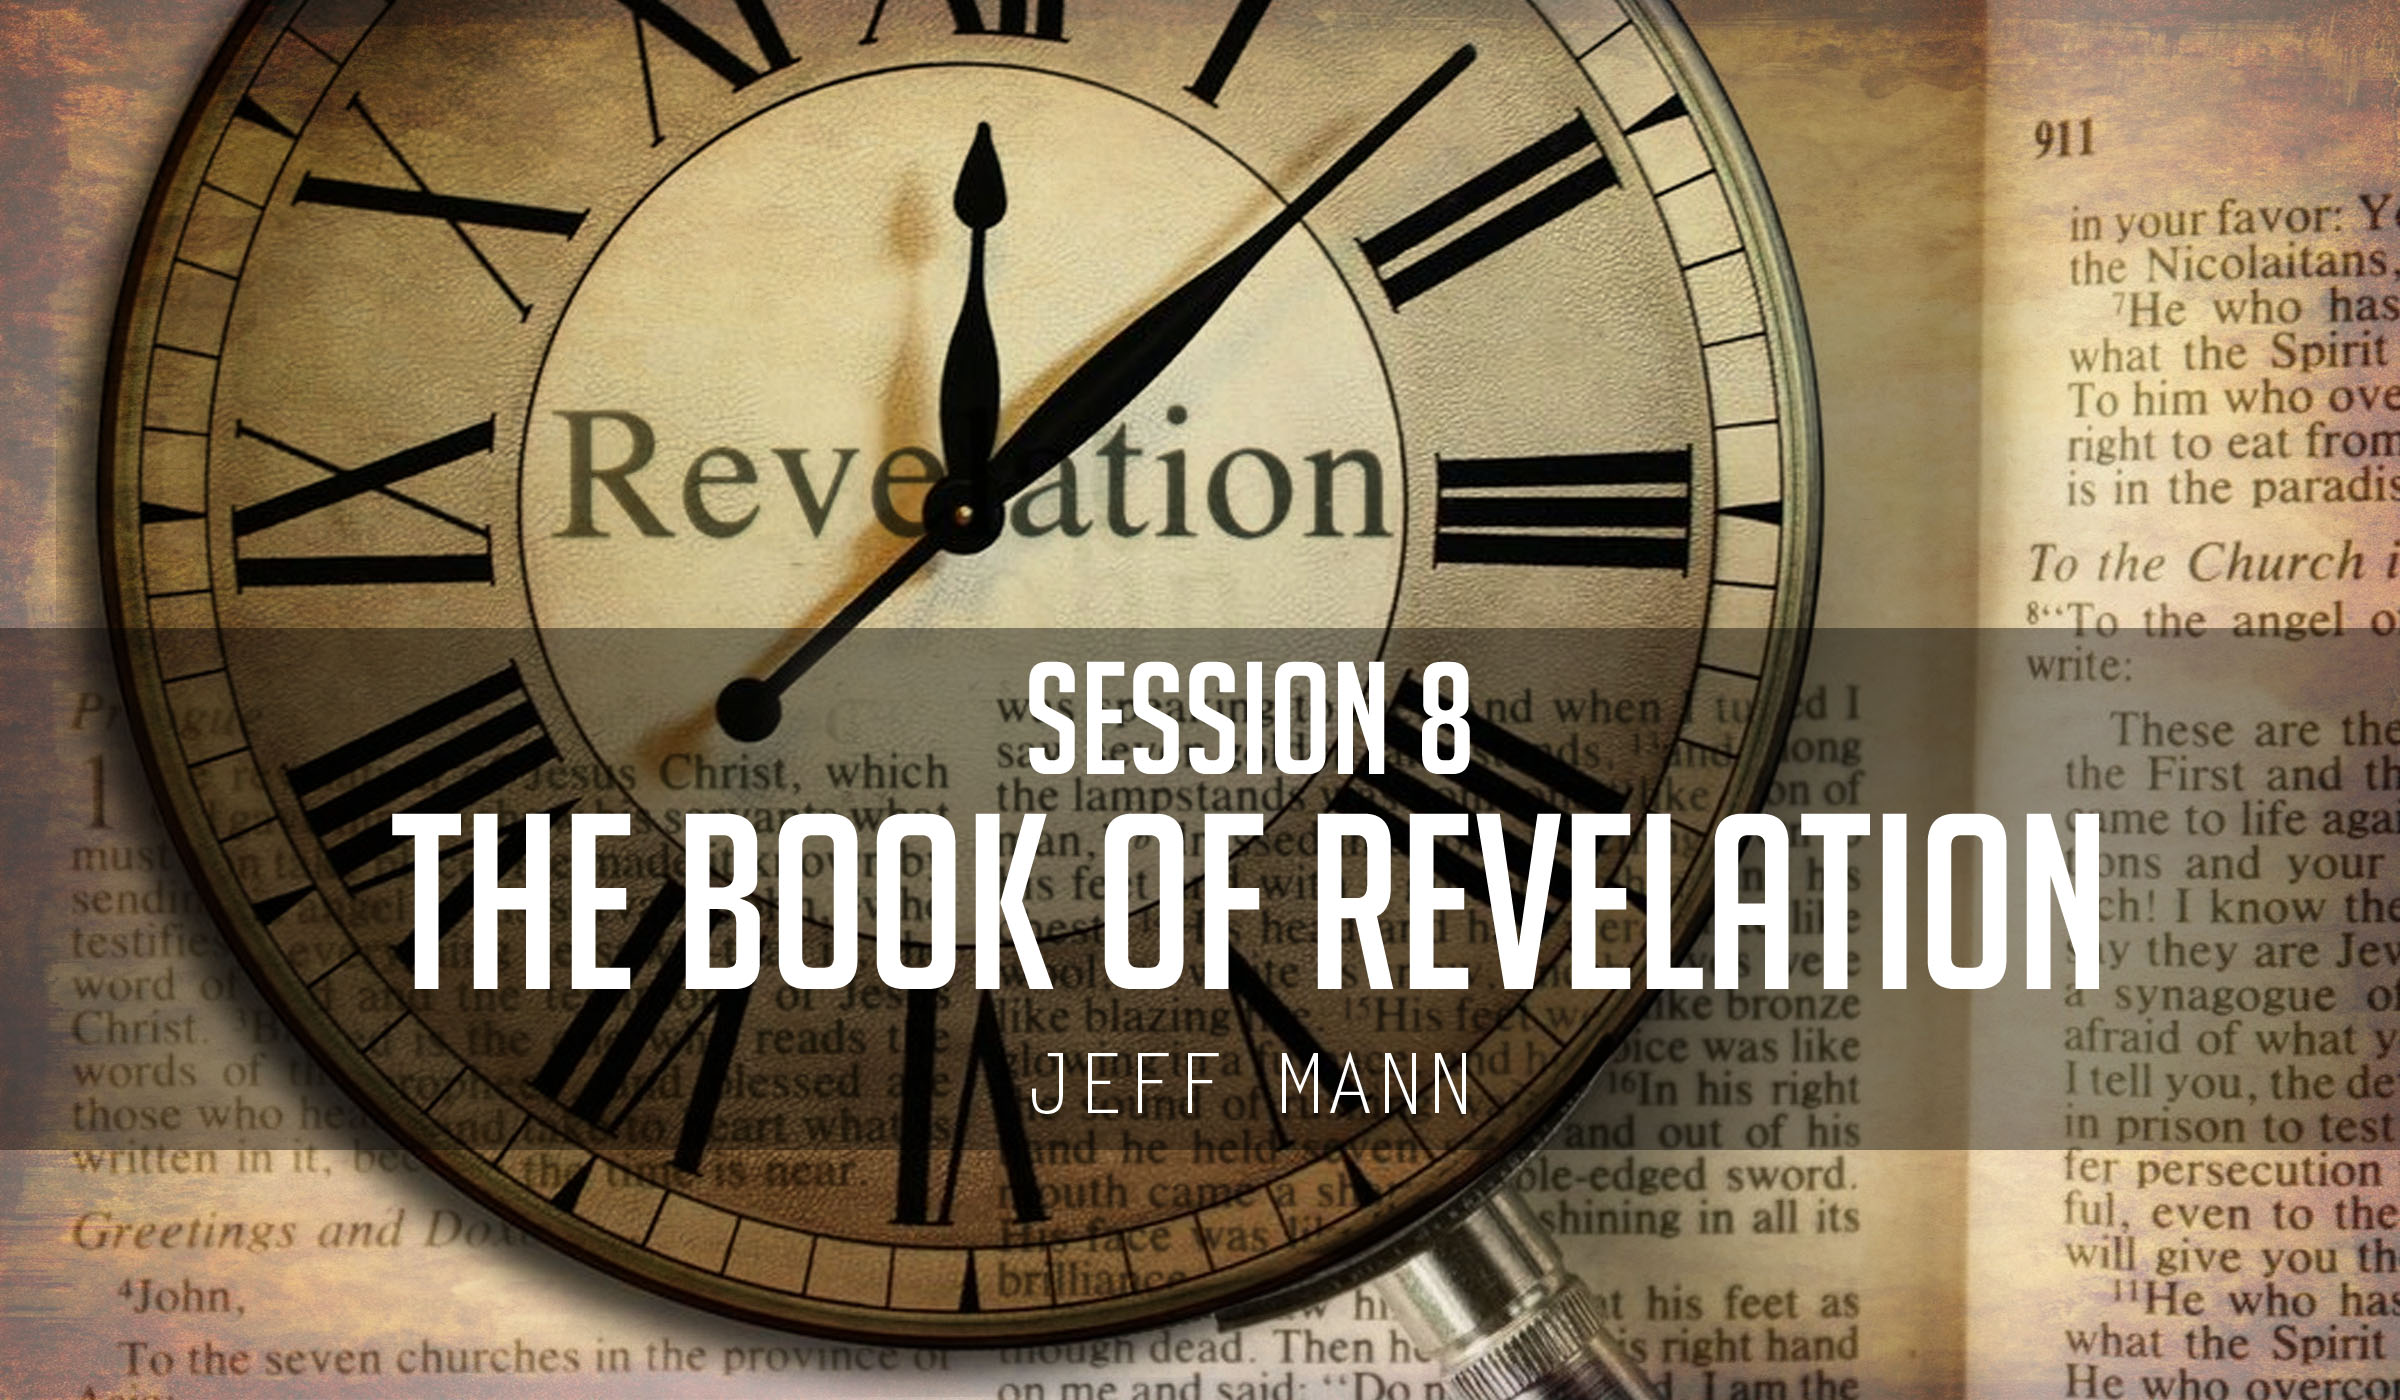 The Book of Revelation Session 8